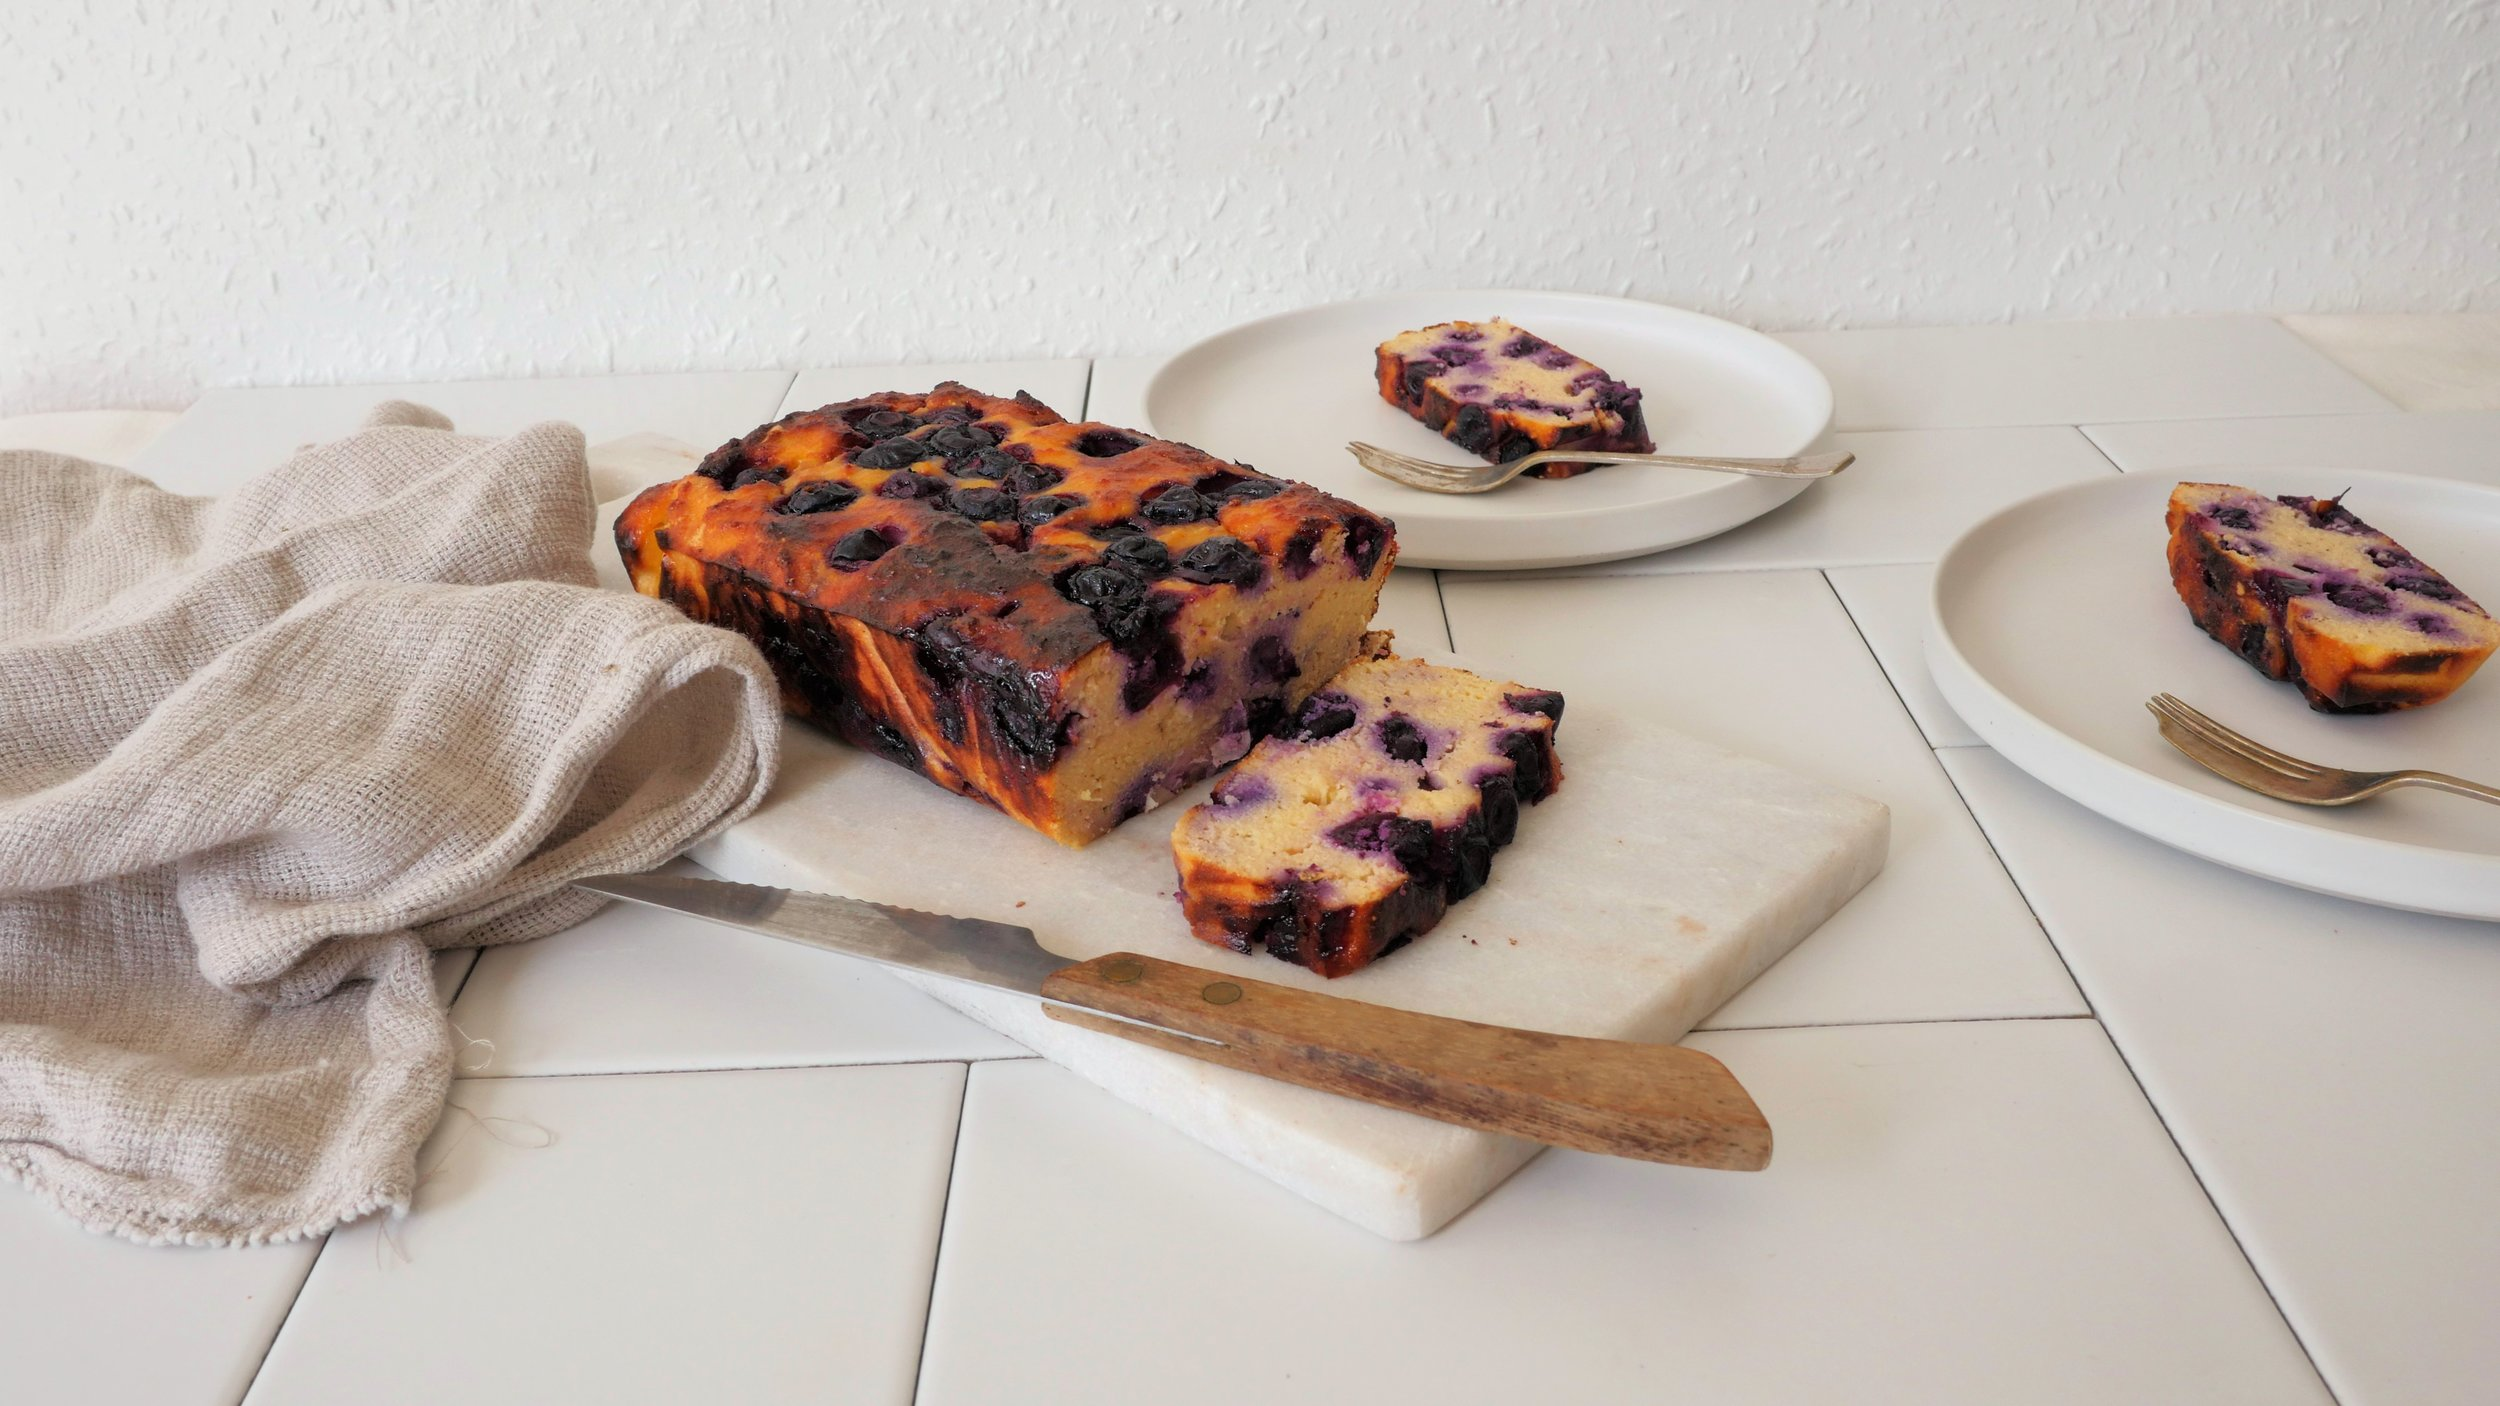 Blueberry Lemon Paleo Loaf.jpg